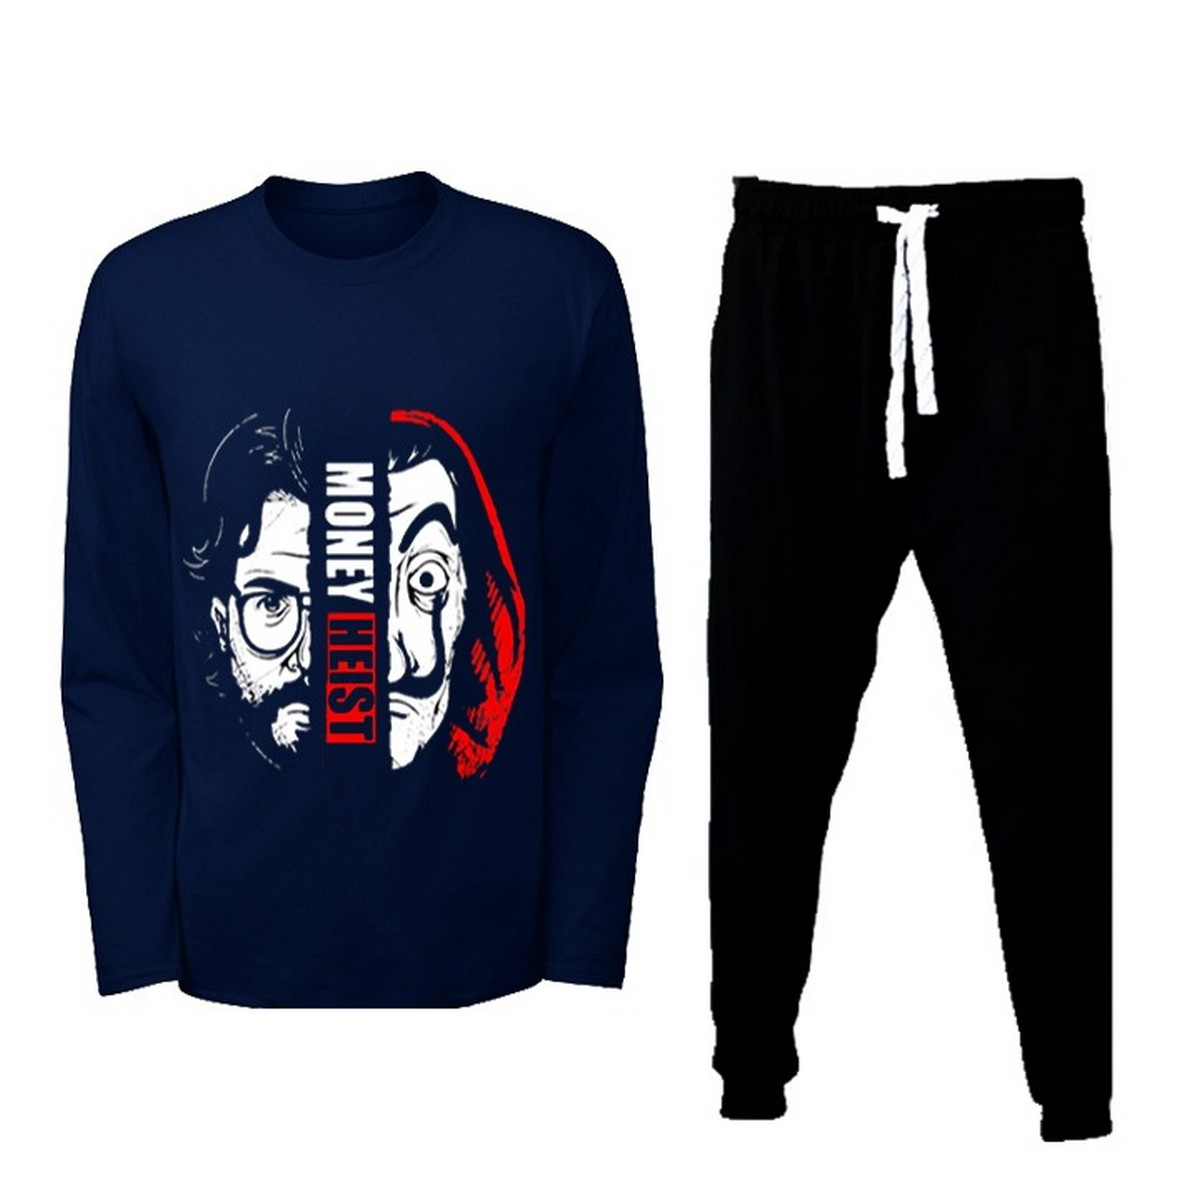 Latest Money Heist Printed Navy T Shirt And Trouser Cotton Full Sleeves Tees New Collection Jogging Pants Top Quality Outfits For Men